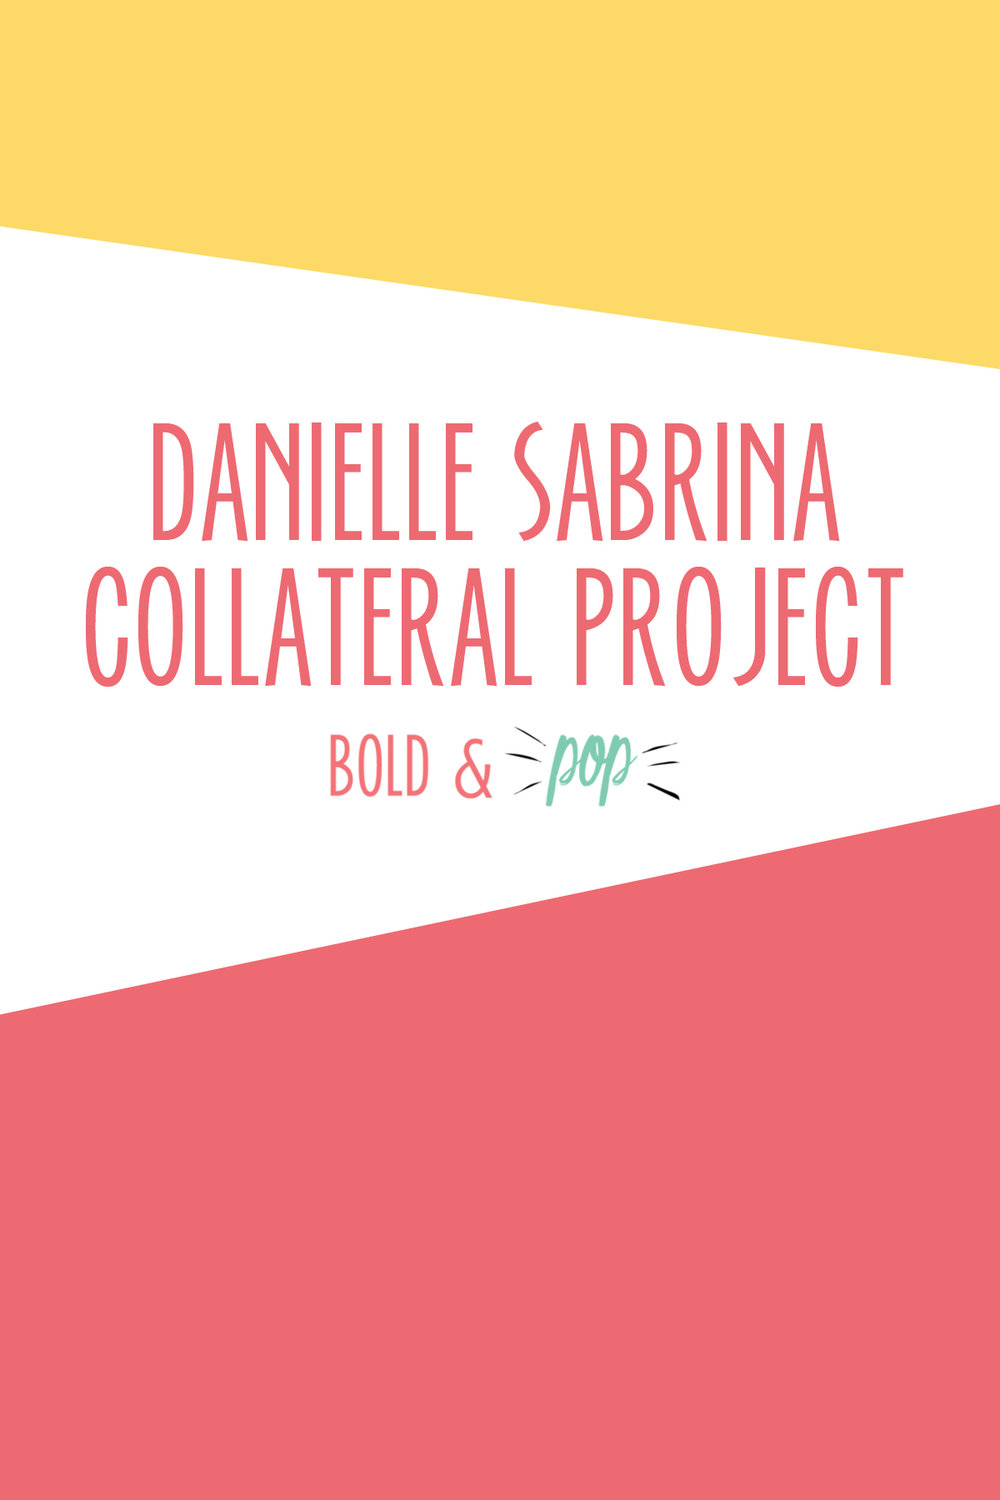 Bold & Pop : Danielle Sabrina Collateral Project